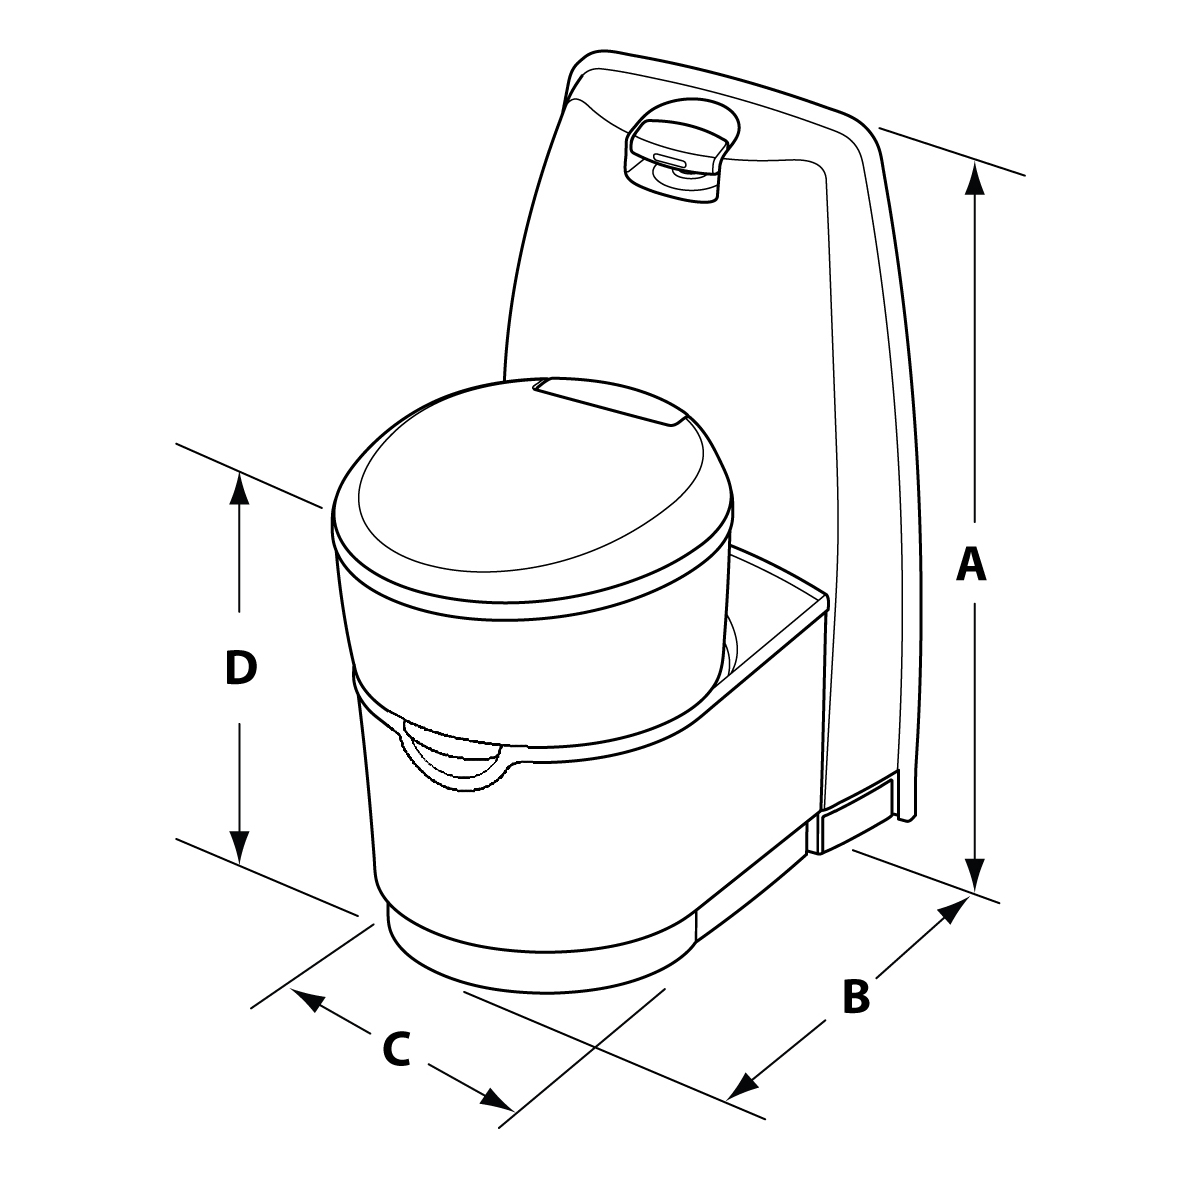 hight resolution of  the valve and seal of your cassette toilet as these will damage the seals and surfaces causing odors to escape from holding tanks